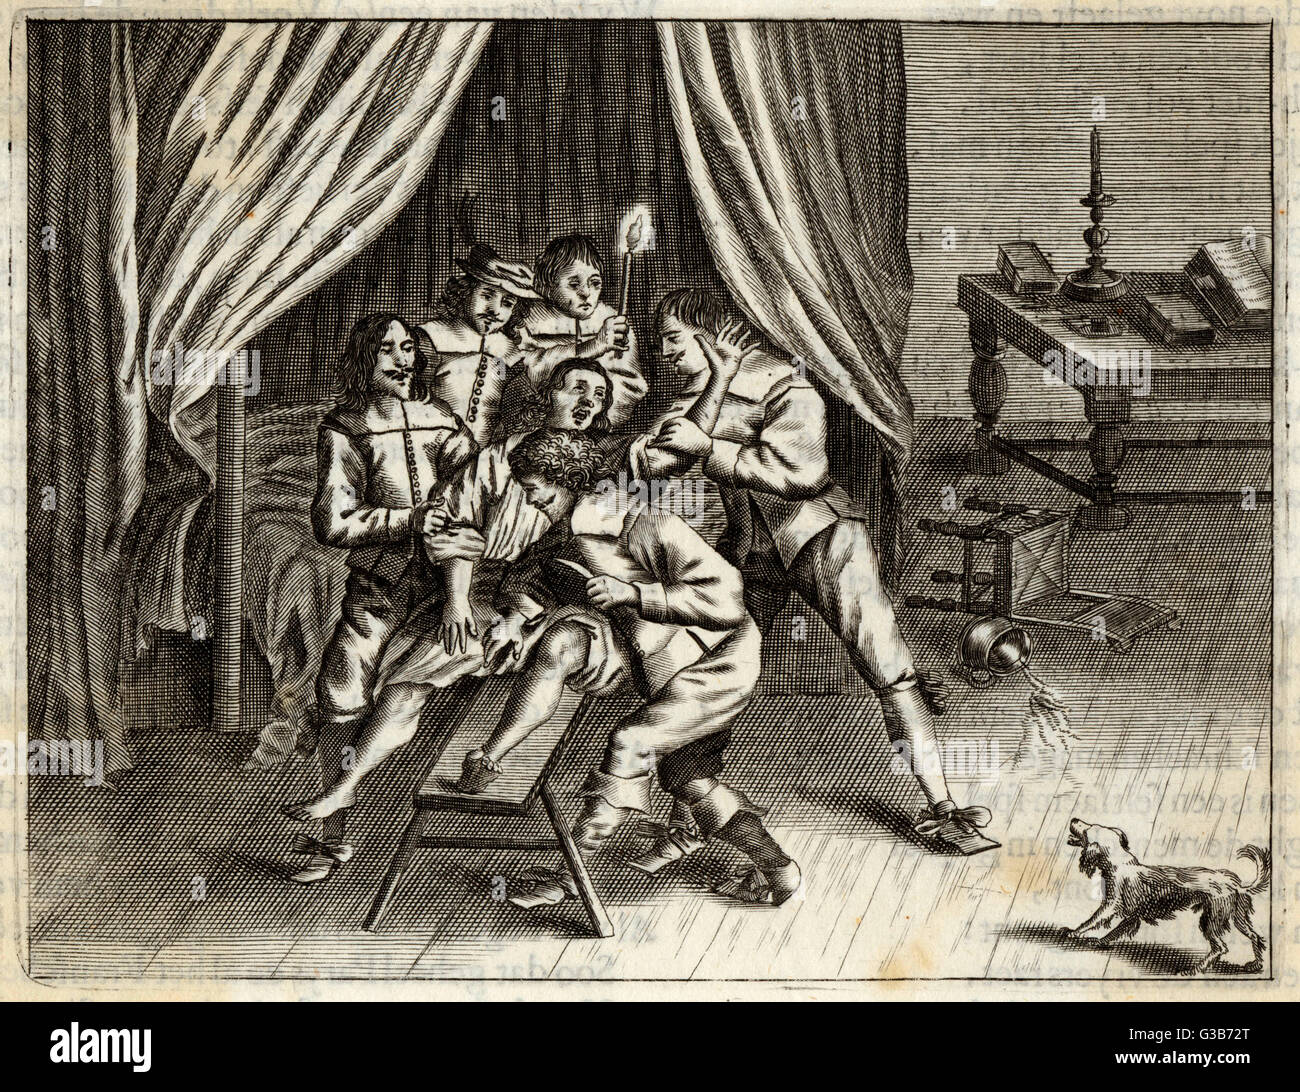 A patient is pinned down and  involuntarily castrated         Date: Seventeenth century - Stock Image